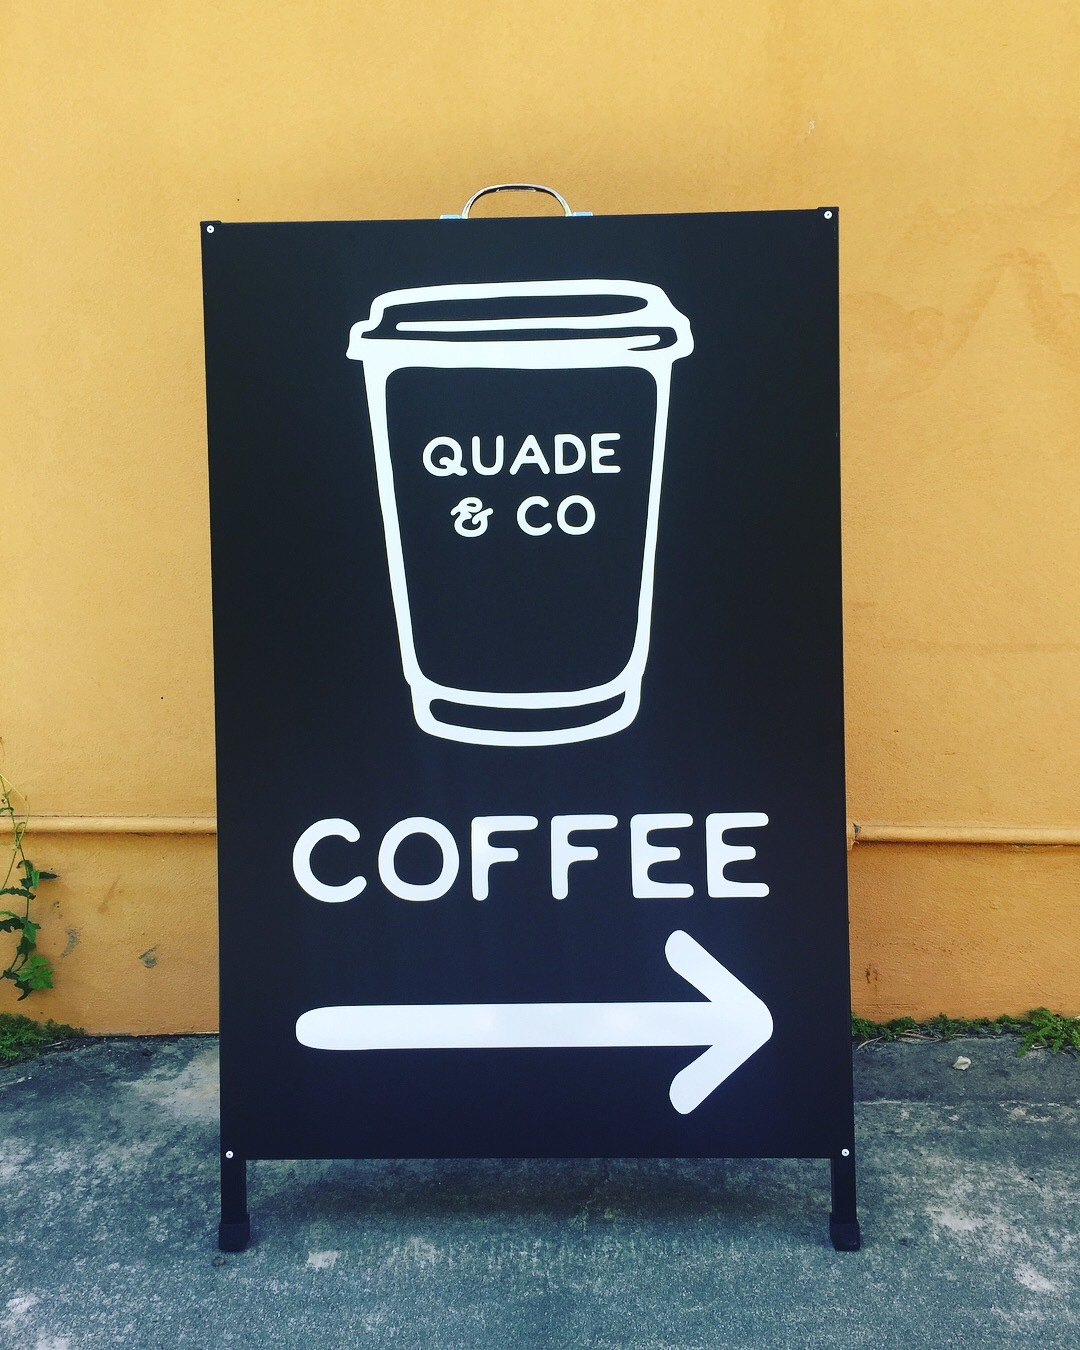 Quade & Co - Sandwich board